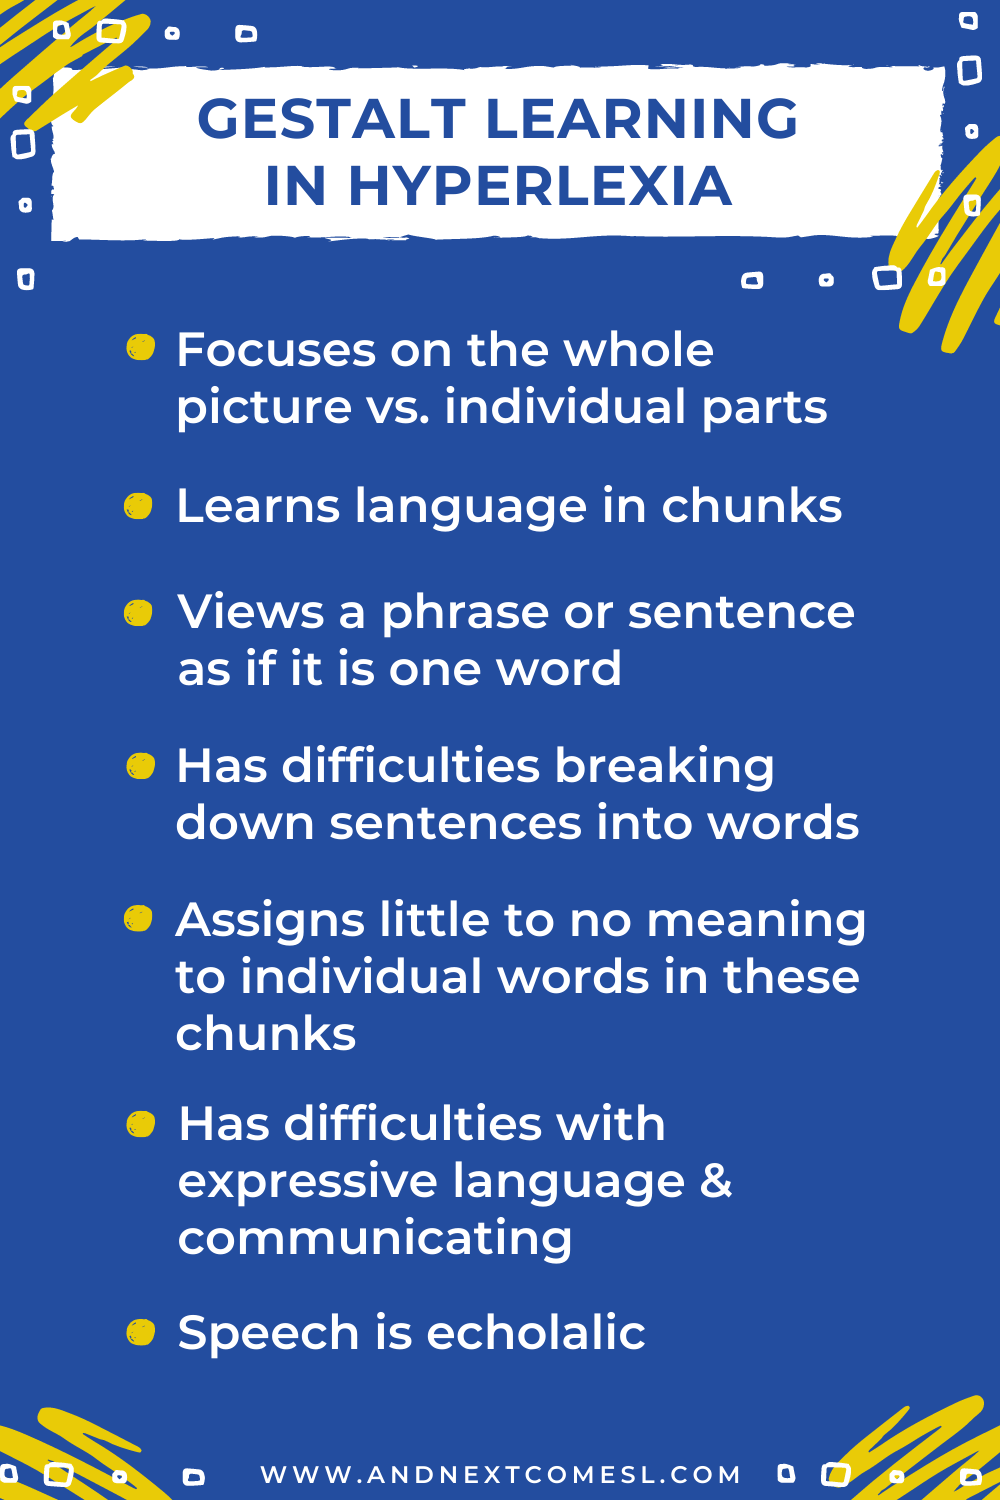 An overview of gestalt learning in hyperlexia characteristics